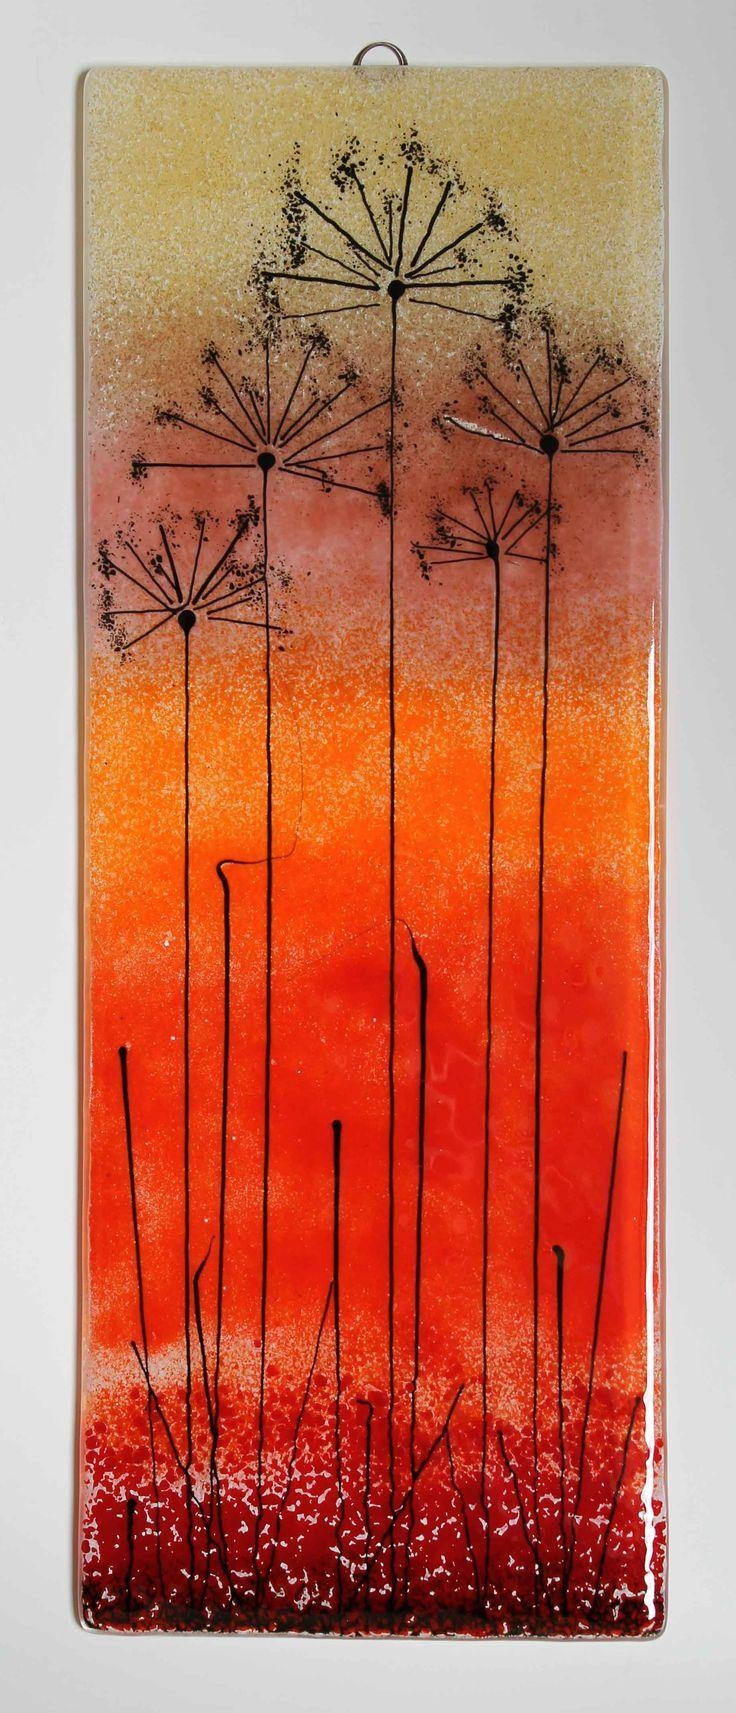 1914 Best Fused Glass – Artsy Fartsy Images On Pinterest | Stained Pertaining To Fused Glass Wall Art Devon (View 4 of 20)